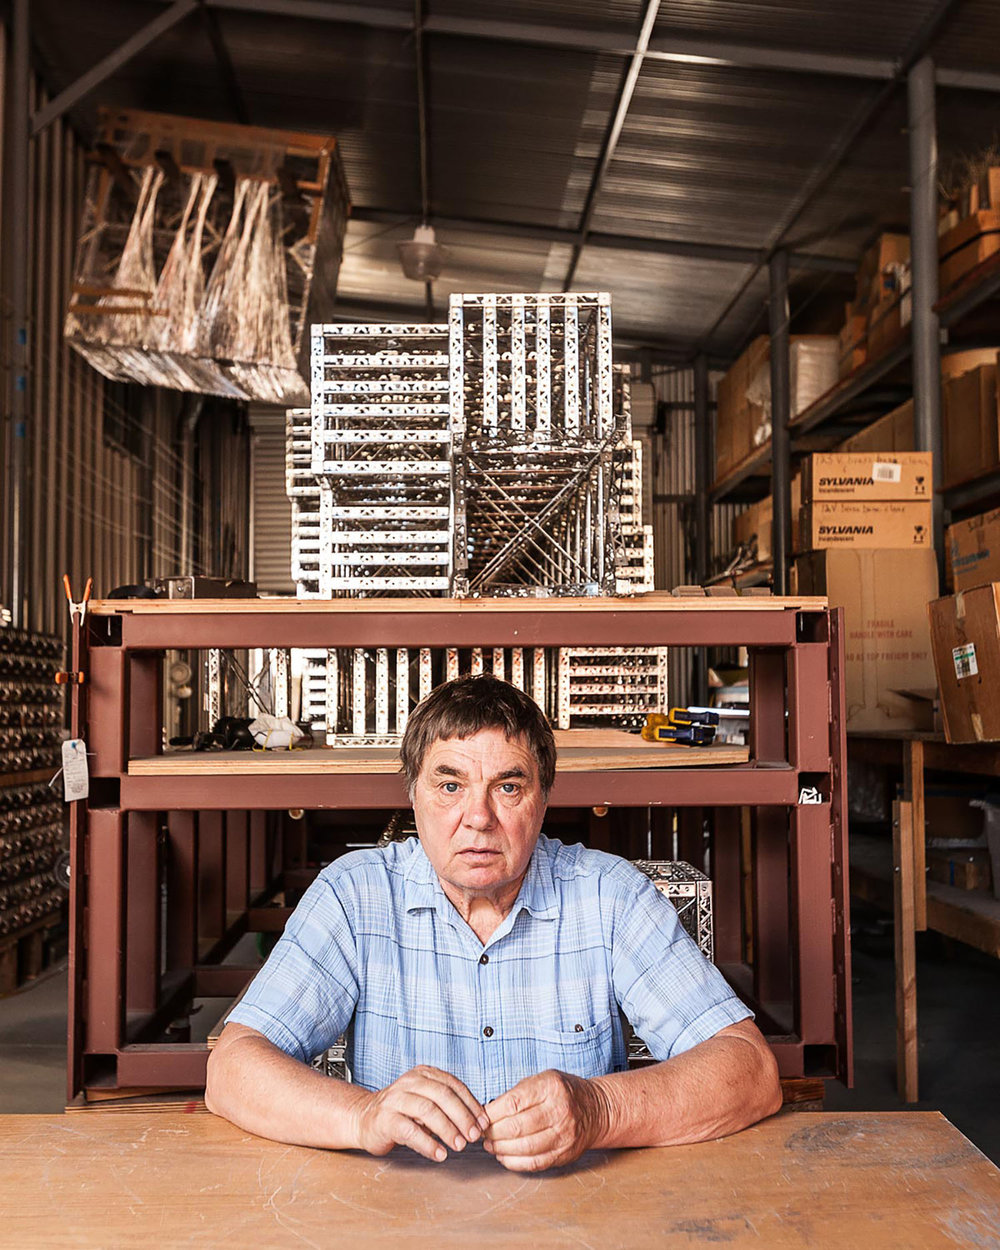 Chris Burden, Artist, Topanga Canyon, California, 2015